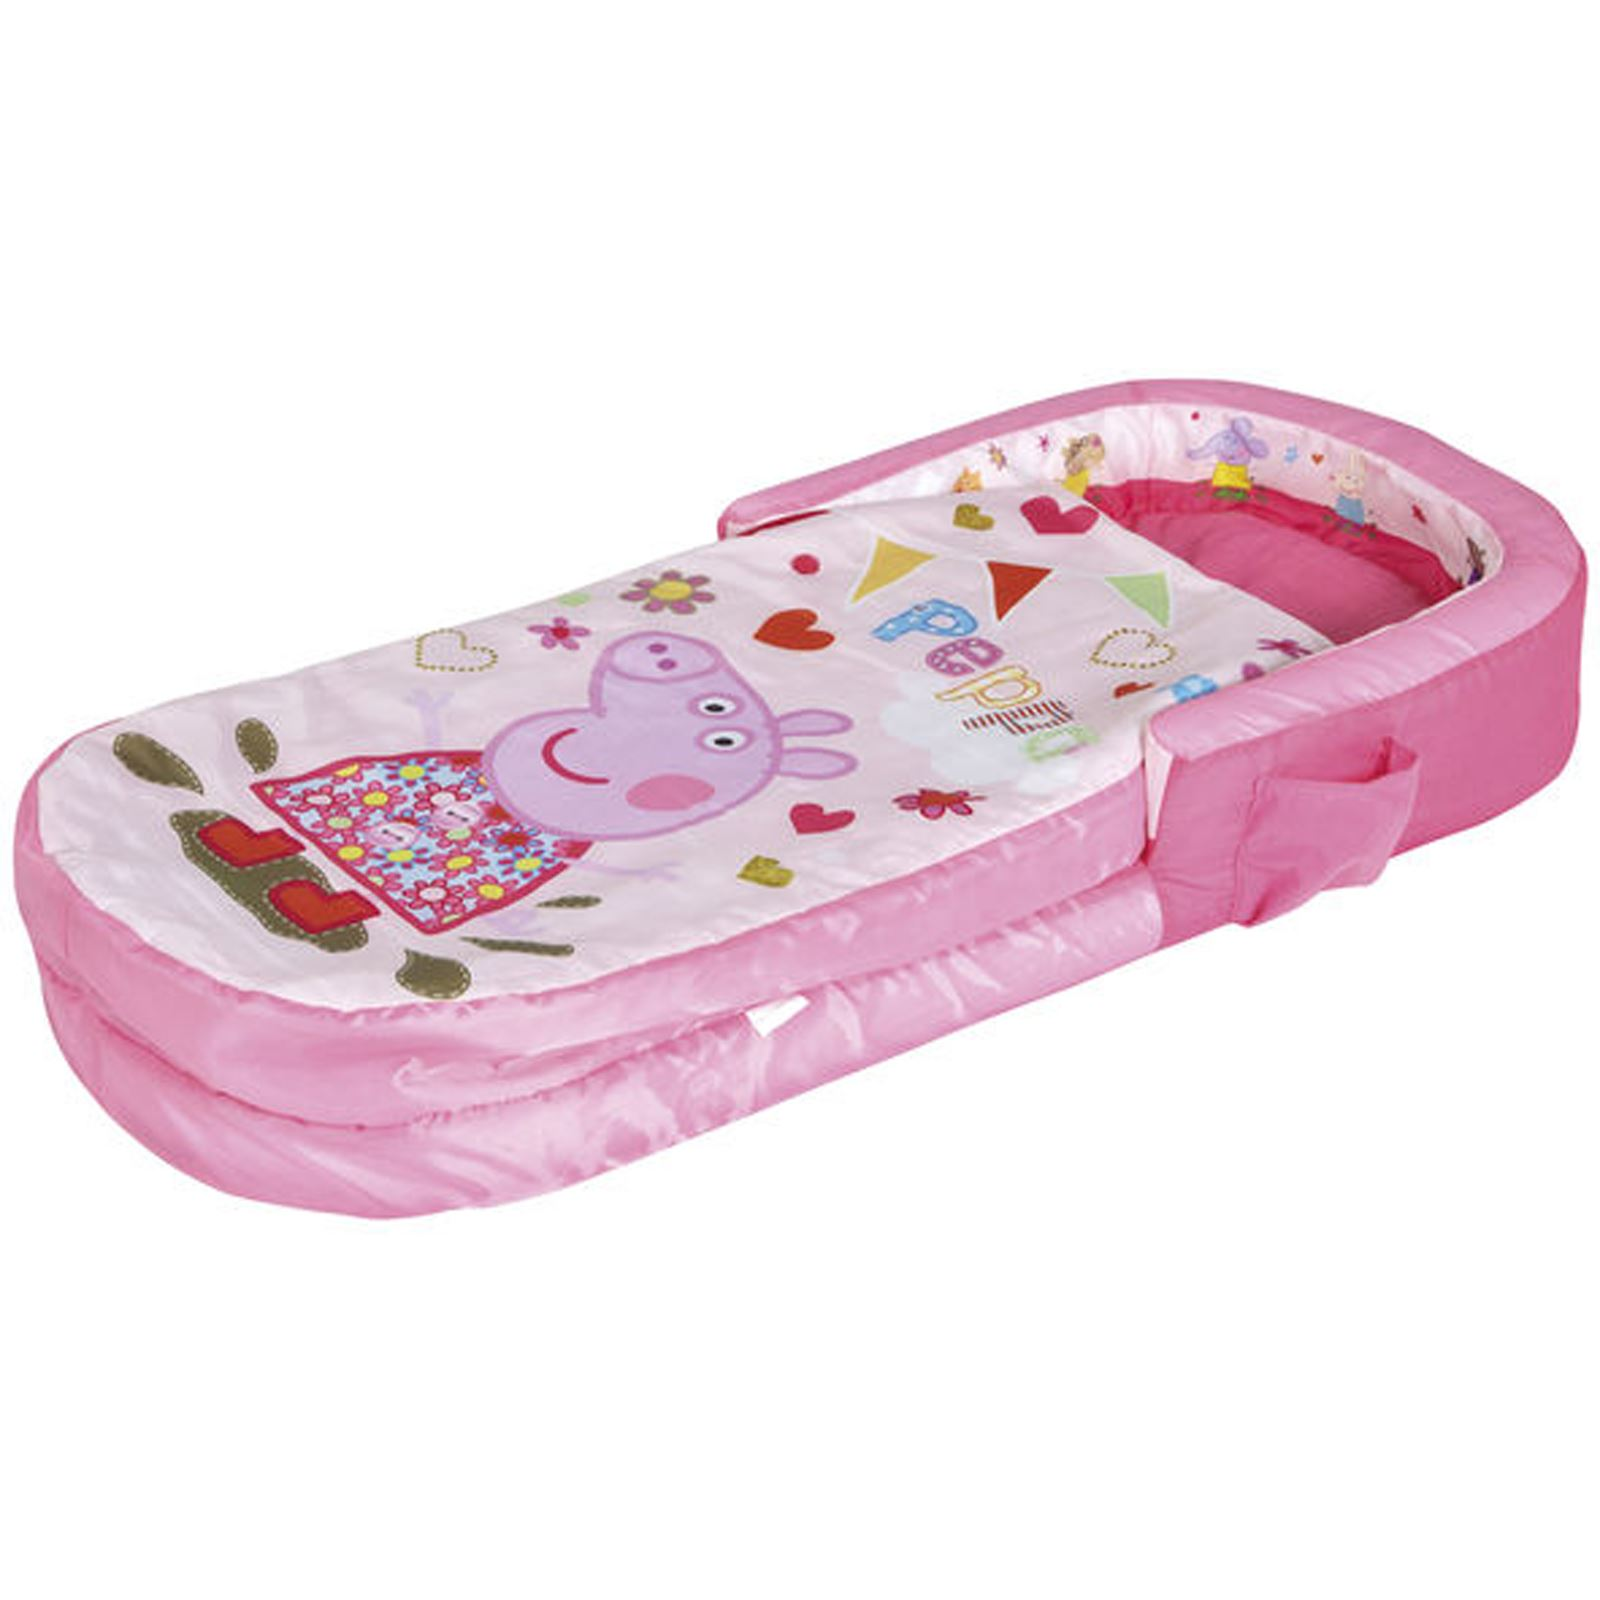 ... about PEPPA PIG MY FIRST READY BED INFLATABLE SLEEPING BAG NEW BEDDING